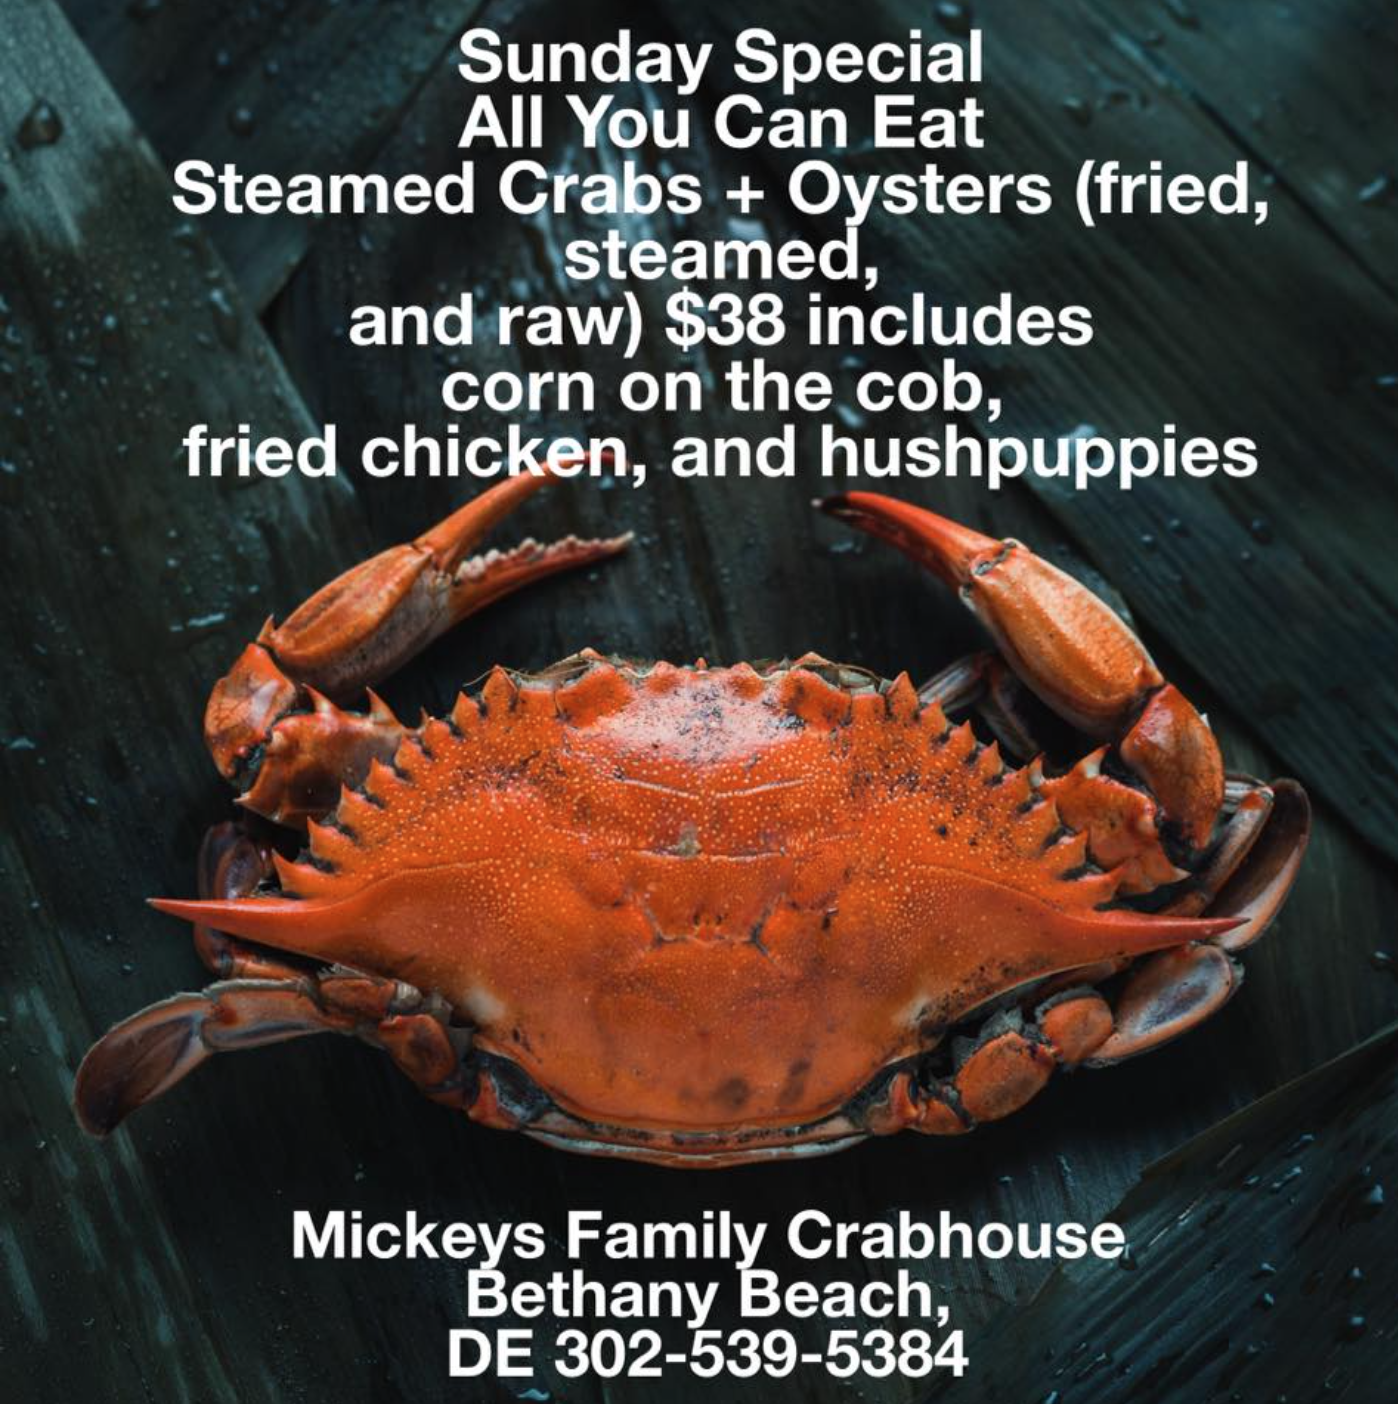 Sunday Special. All you can eat. Steamed crabs + oysters (fried, oysters and raw) $38 included corn of the cob, fried chicken and hush puppies.